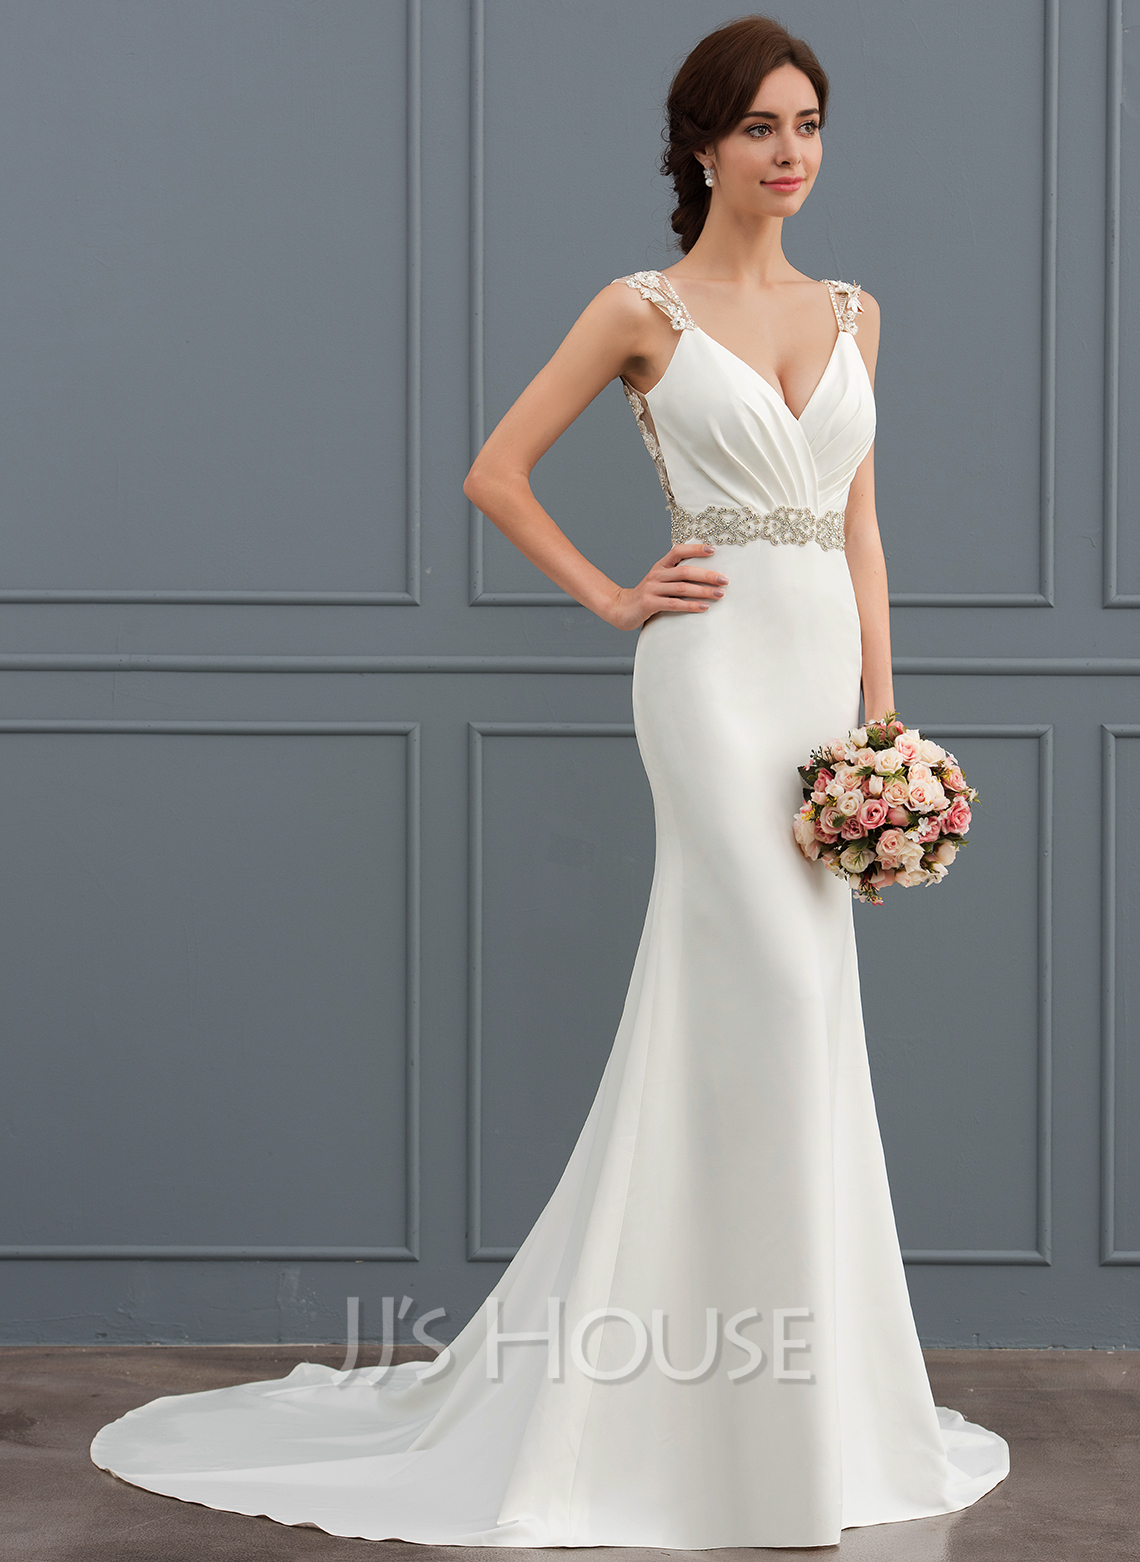 2d25fdd0c531 Trumpet/Mermaid V-neck Court Train Stretch Crepe Wedding Dress With Lace  Beading. Loading zoom